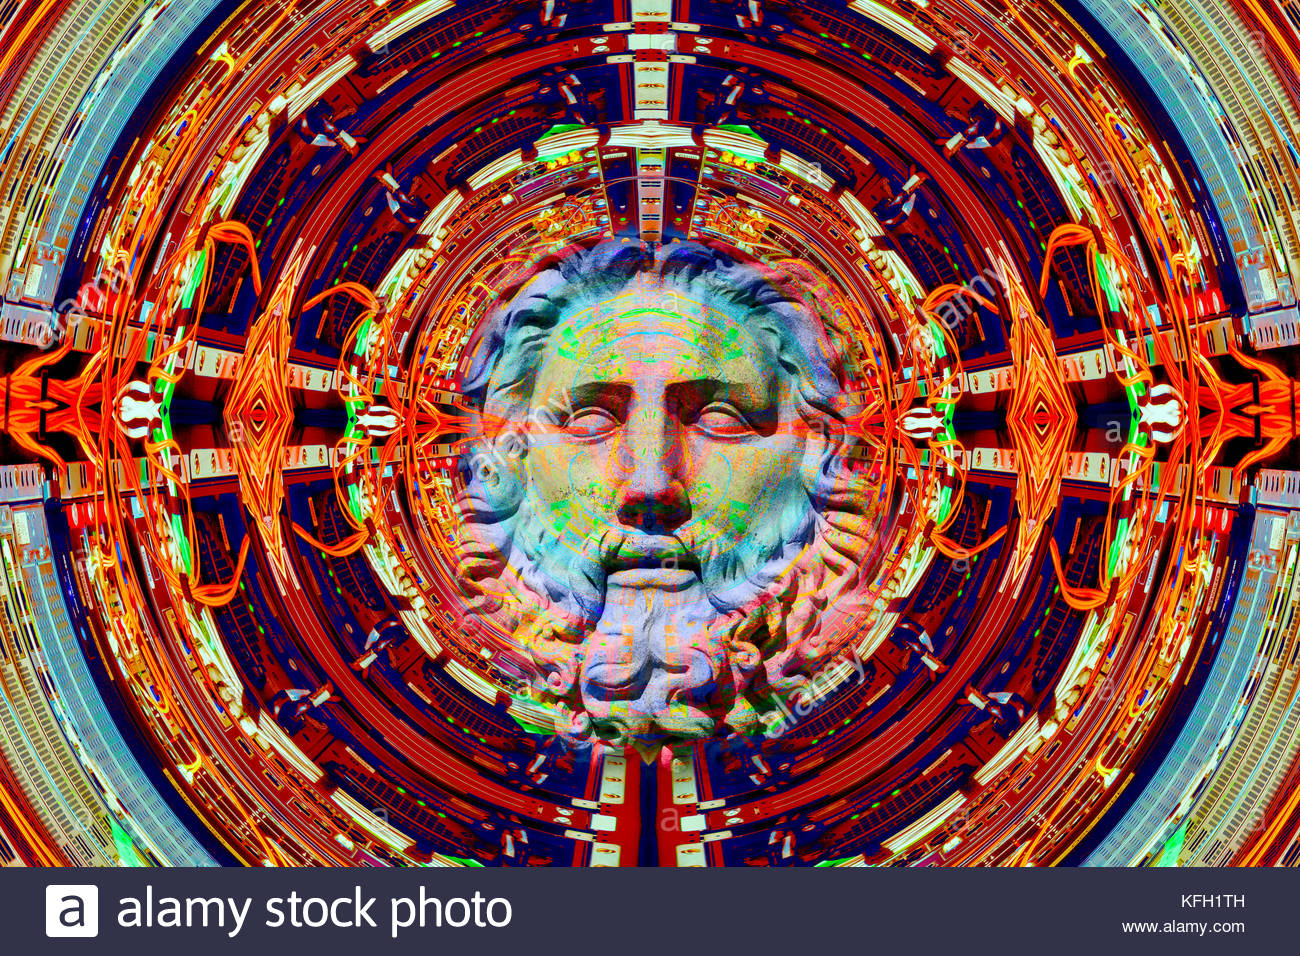 Artificial Intelligence emerging from a computer network science and religion god the singularity cyborg transhumanism - Stock Image